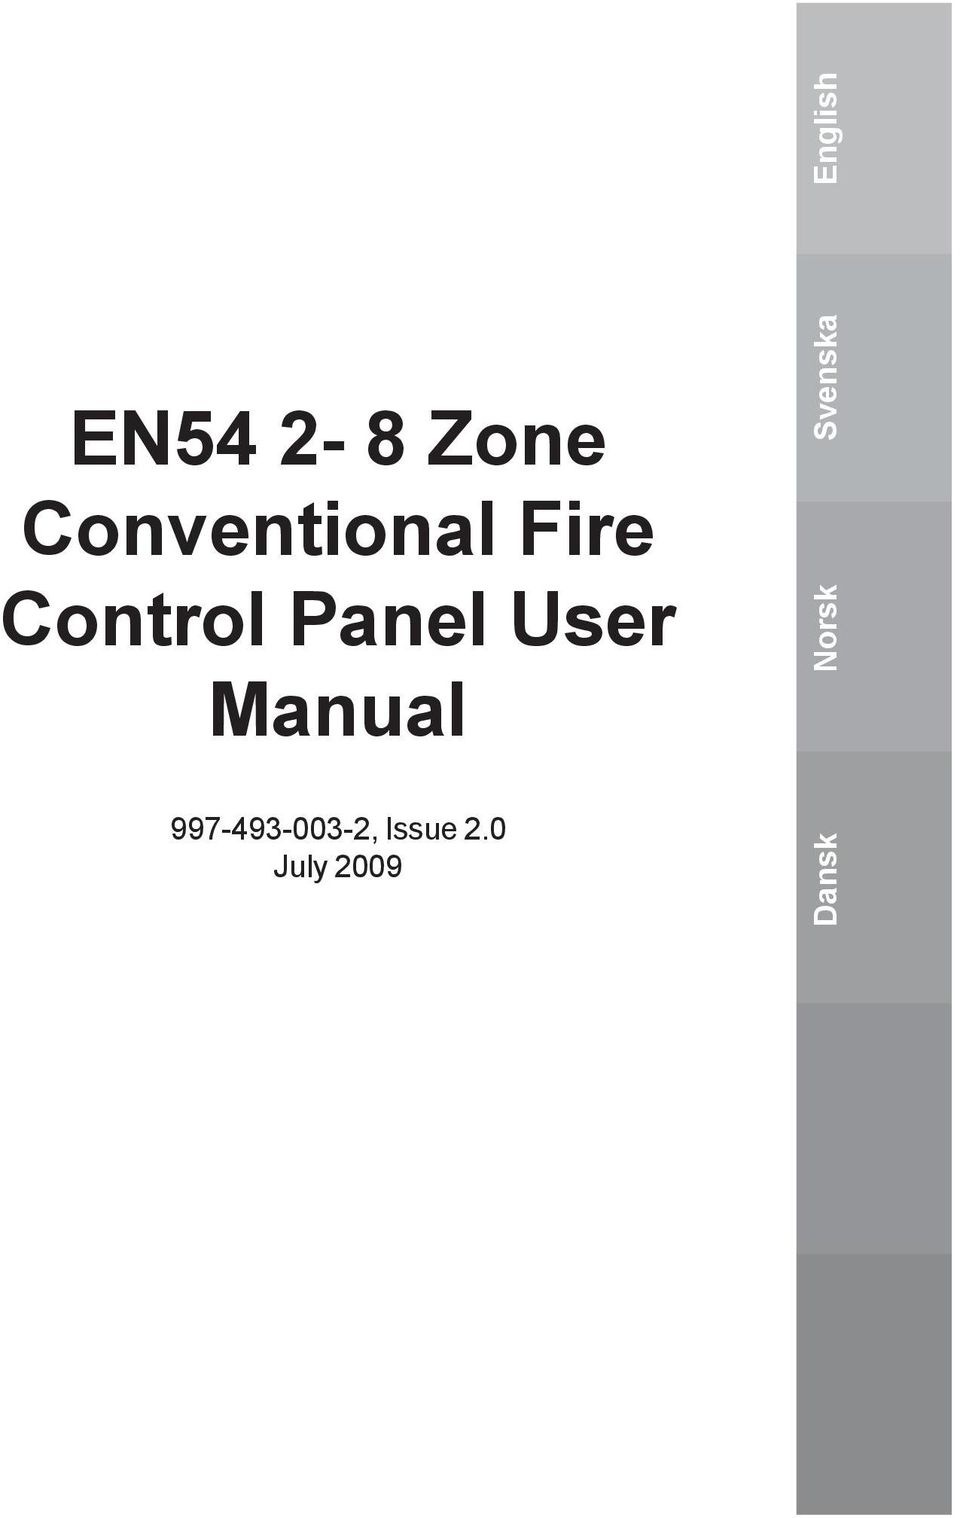 Fire Control Panel User